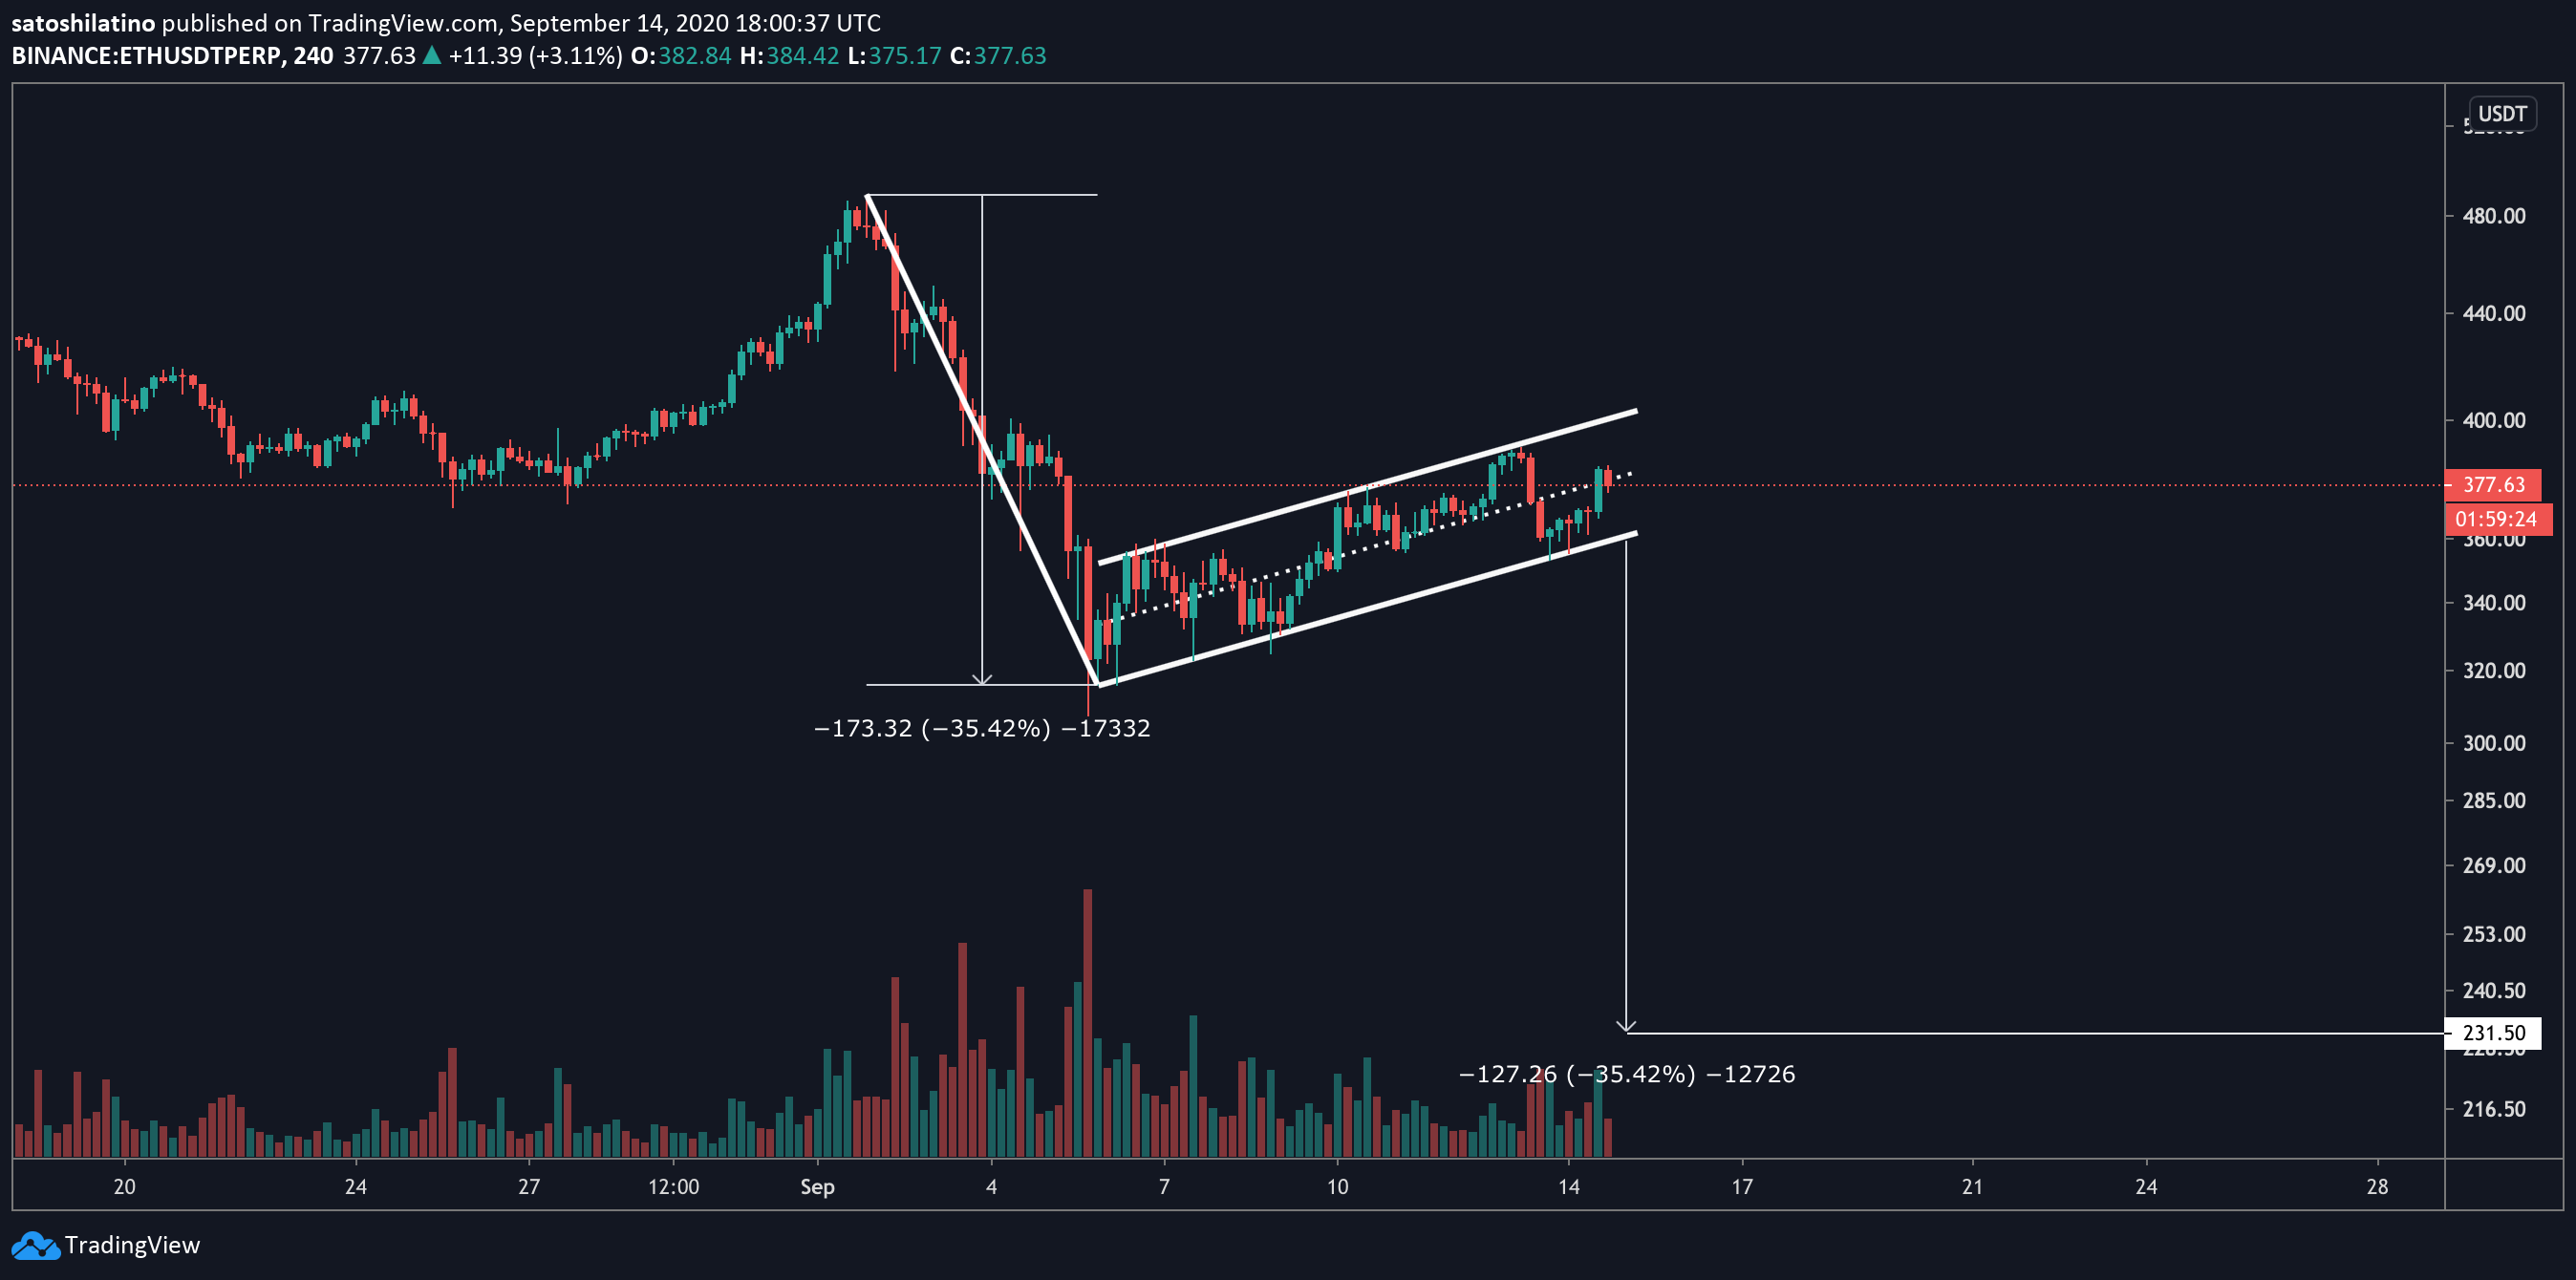 Bearish flag pattern for ETH/USDT on TradingView